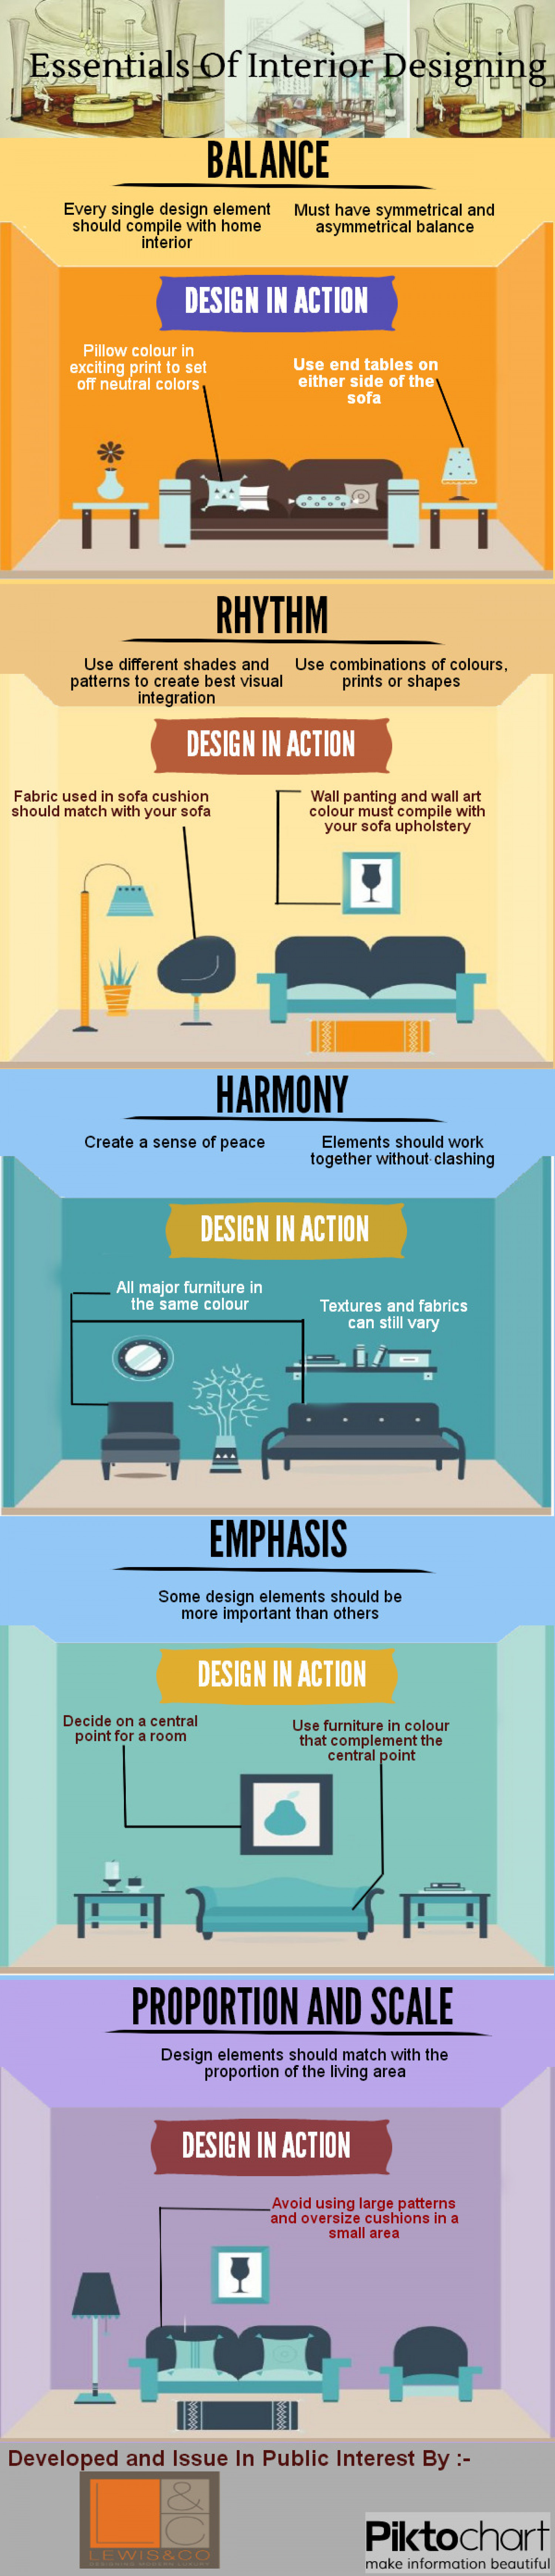 Essentials Of Interior Designing Infographic